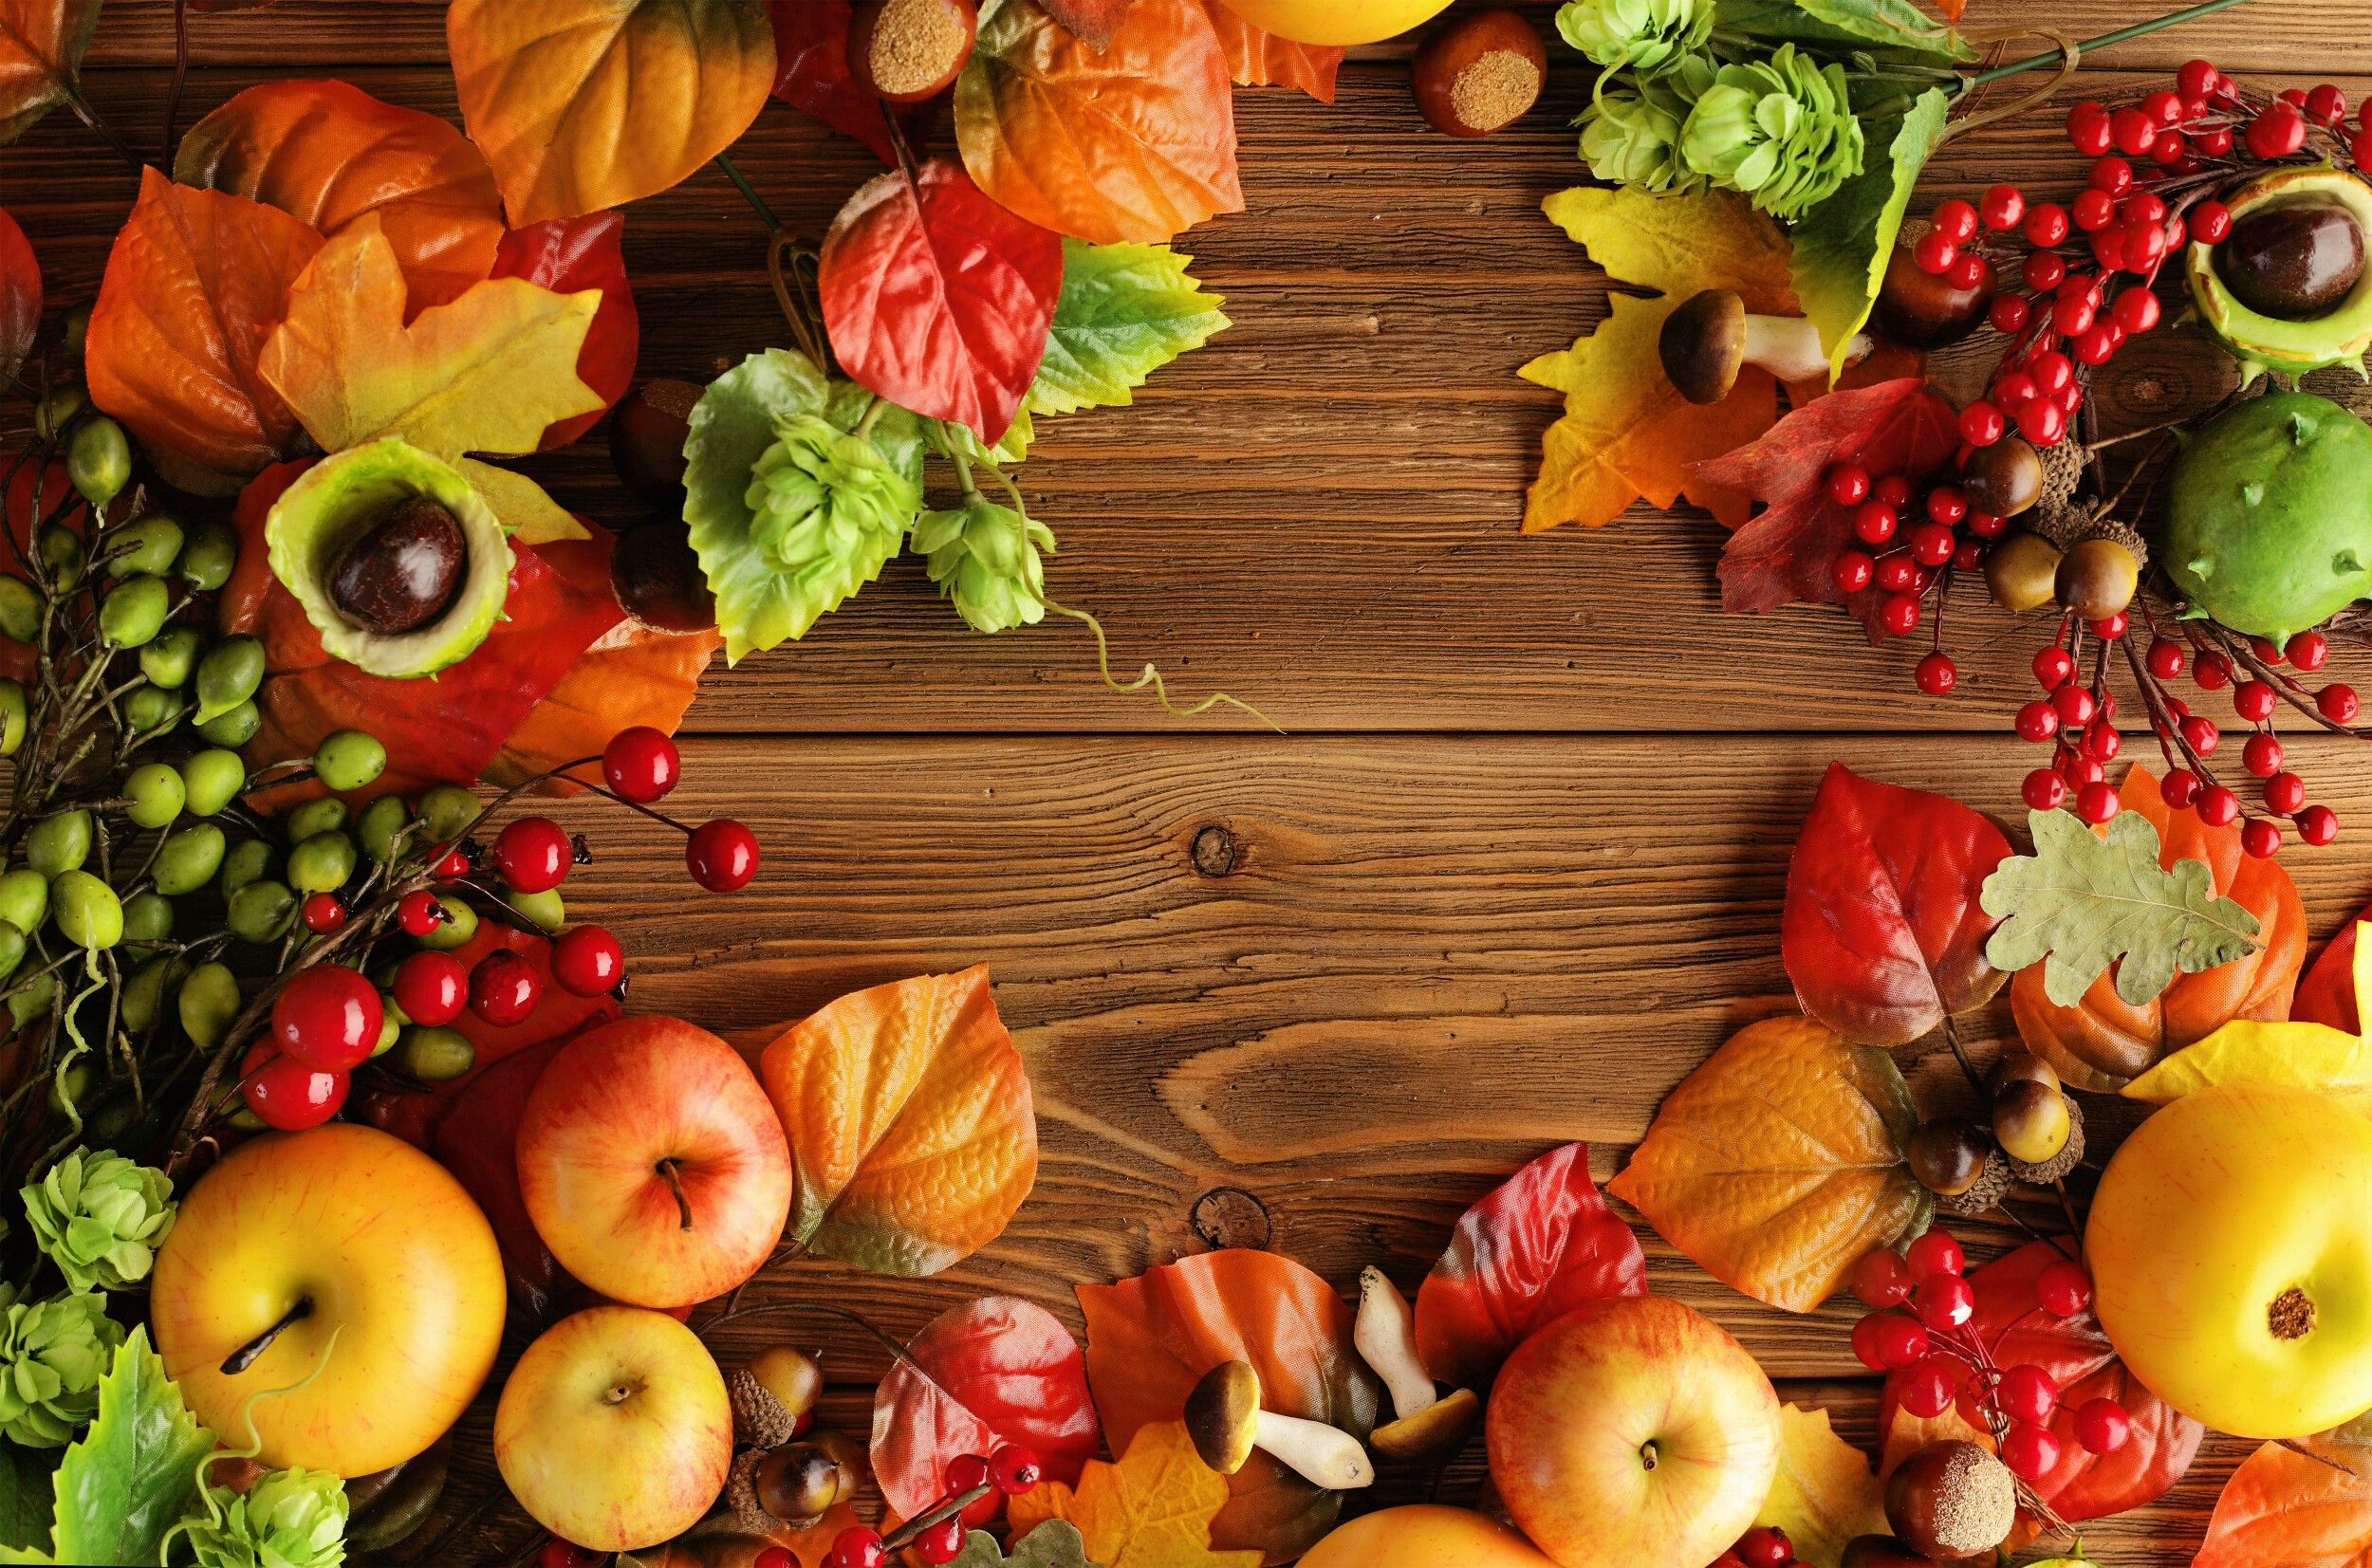 Autumn Wooden Background Fruits HD Wallpaper Autumn